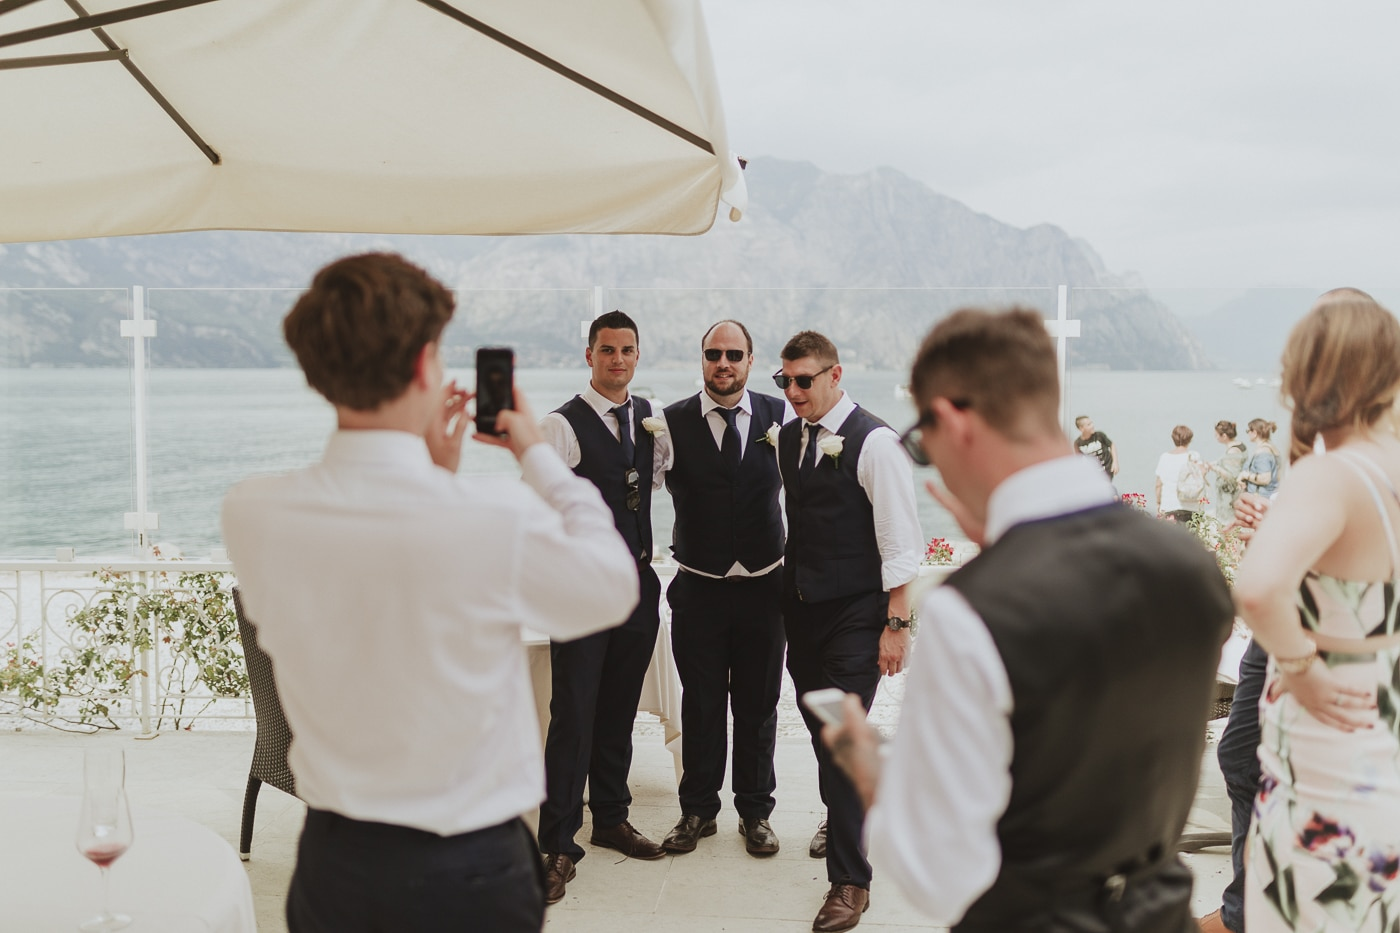 Three men in suits and waistcoats having a photo infront of the mountain and lake scenery by Joshua Wyborn